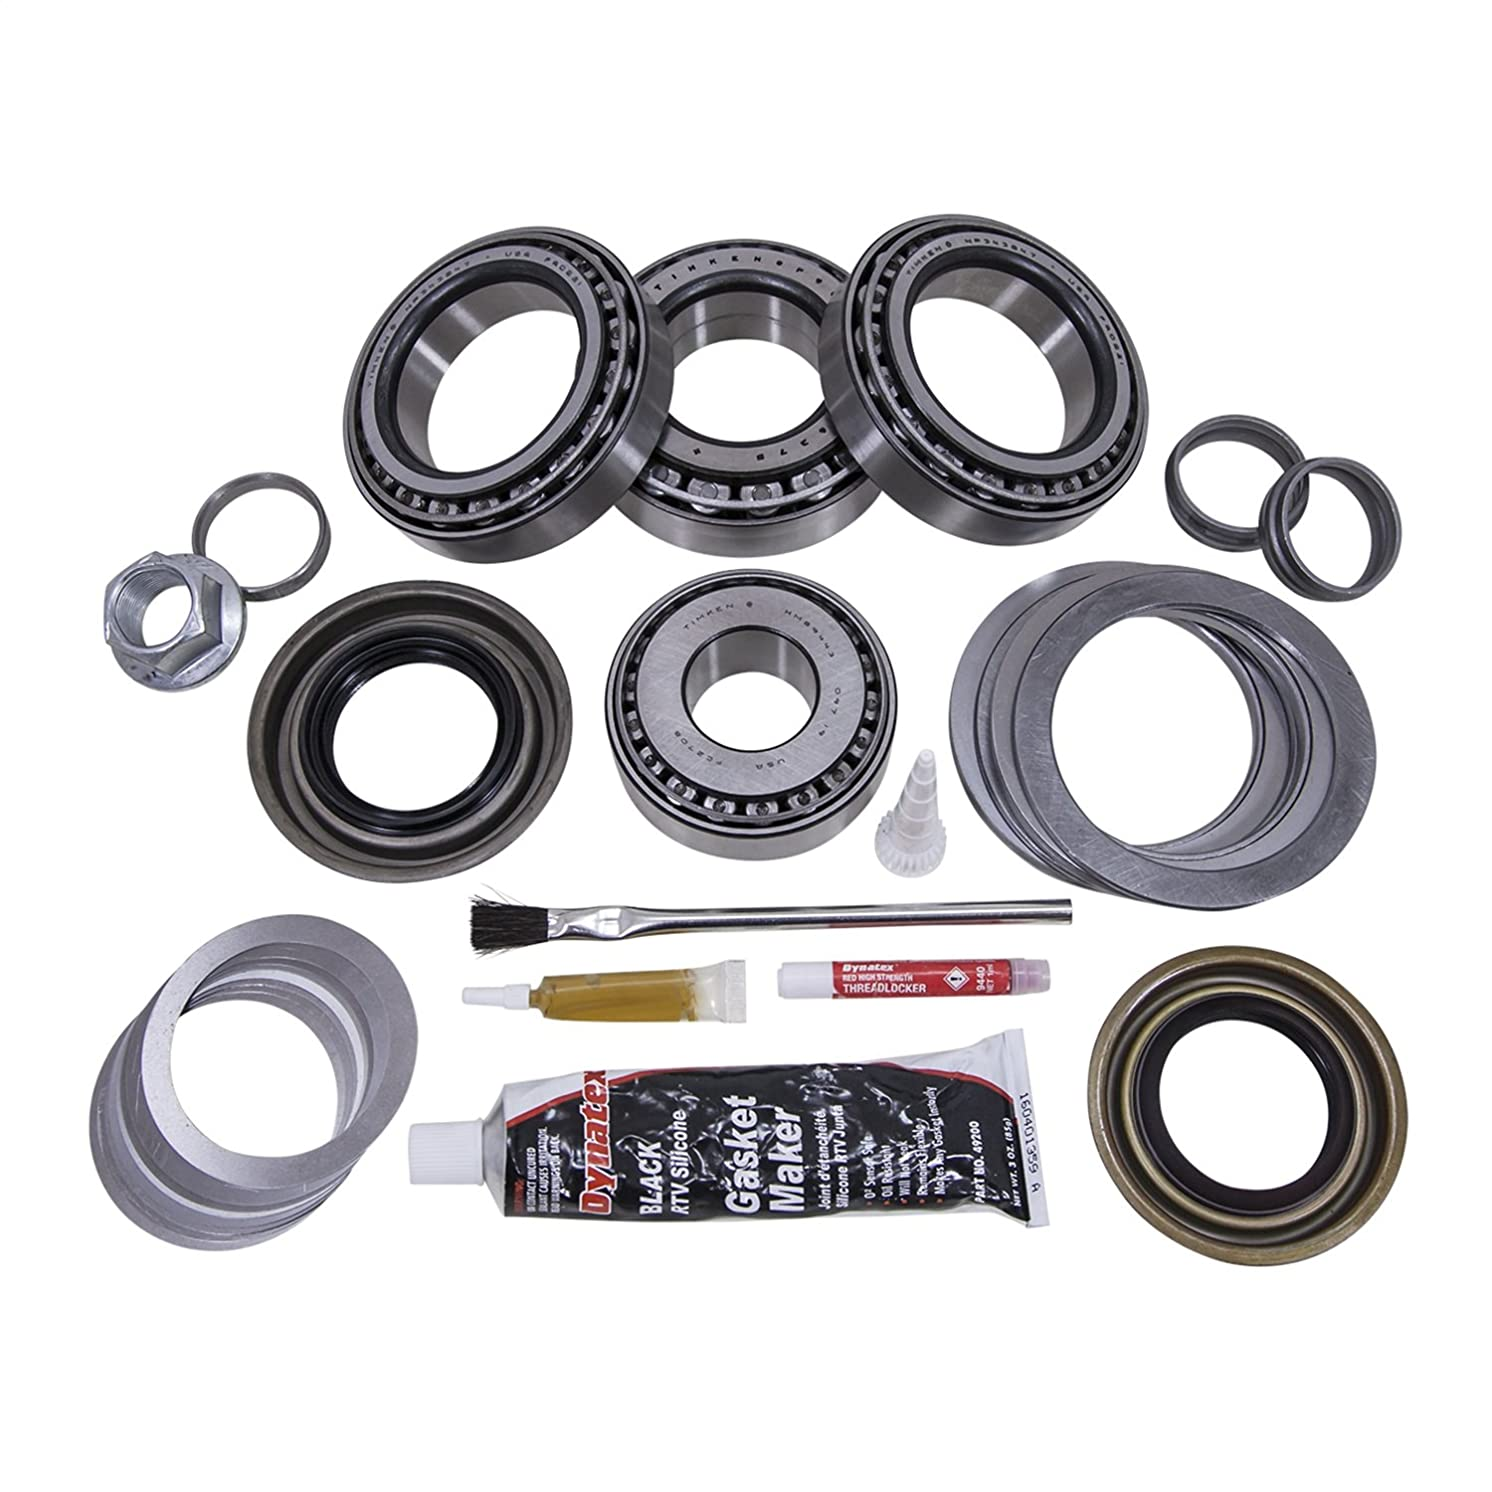 Yukon Gear & Axle (YK F9.75-A) Master Overhaul Kit for Ford 9.75 Differential